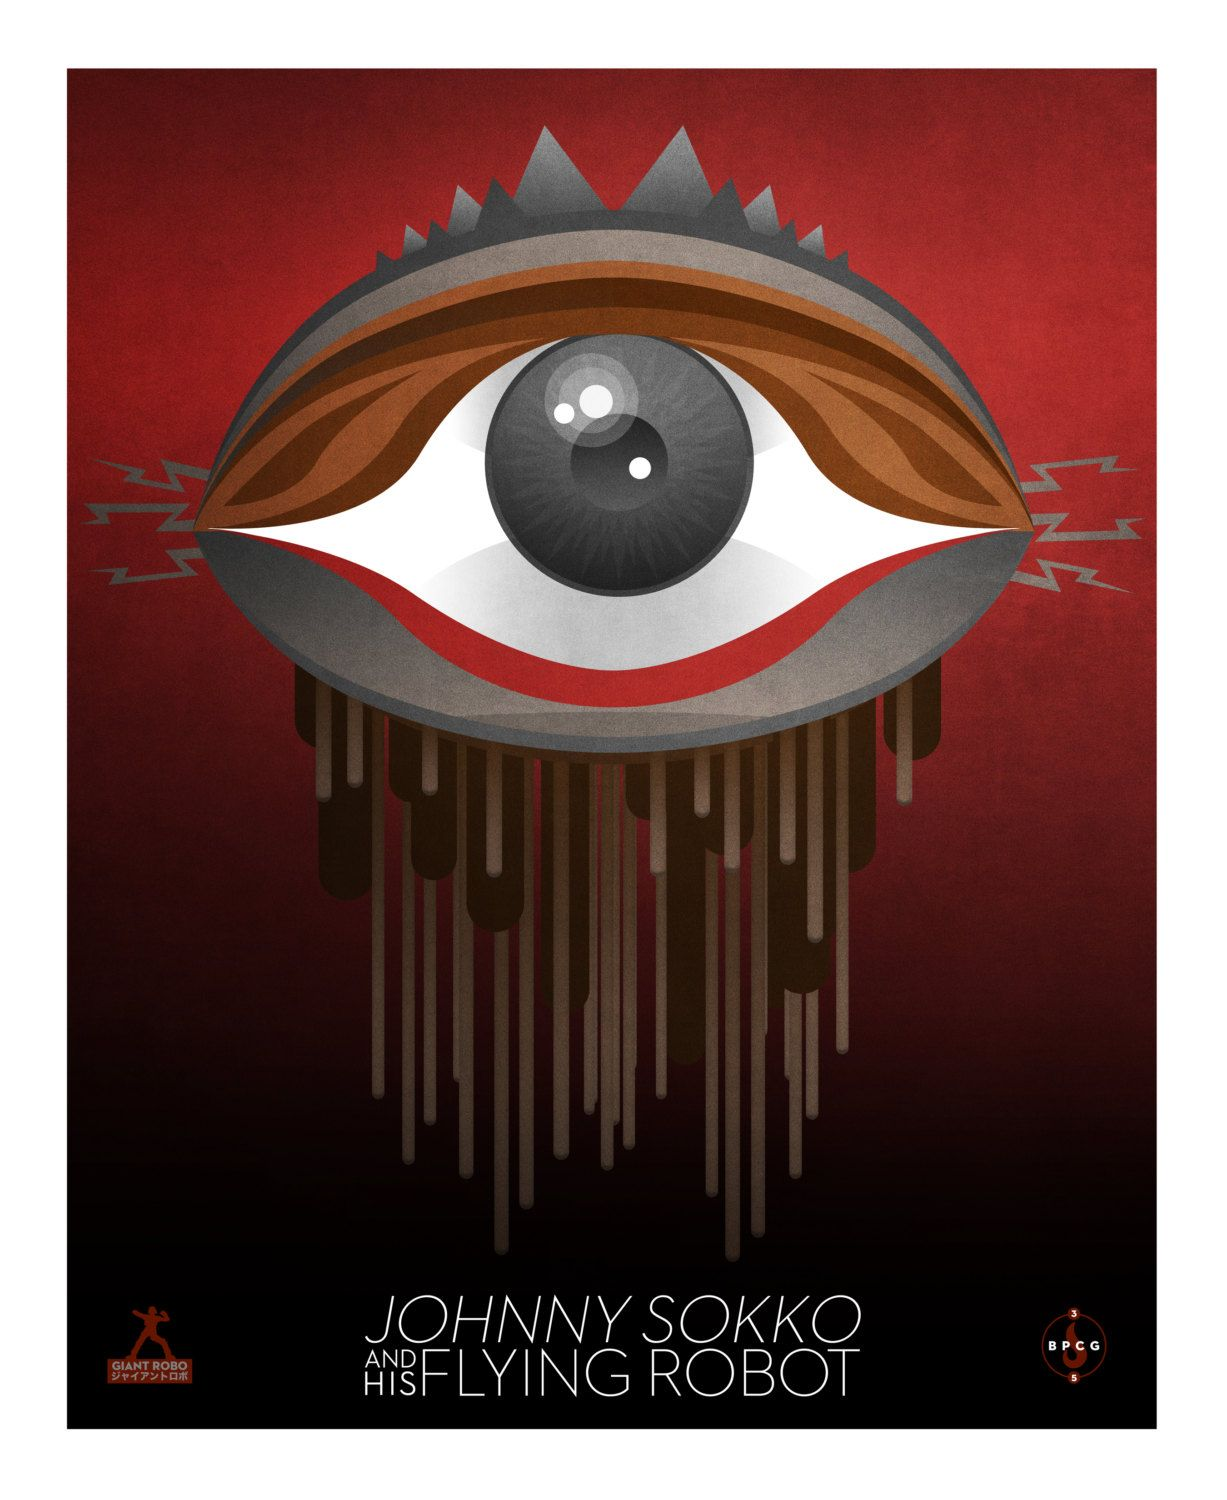 Johnny sokko and his flying robot download